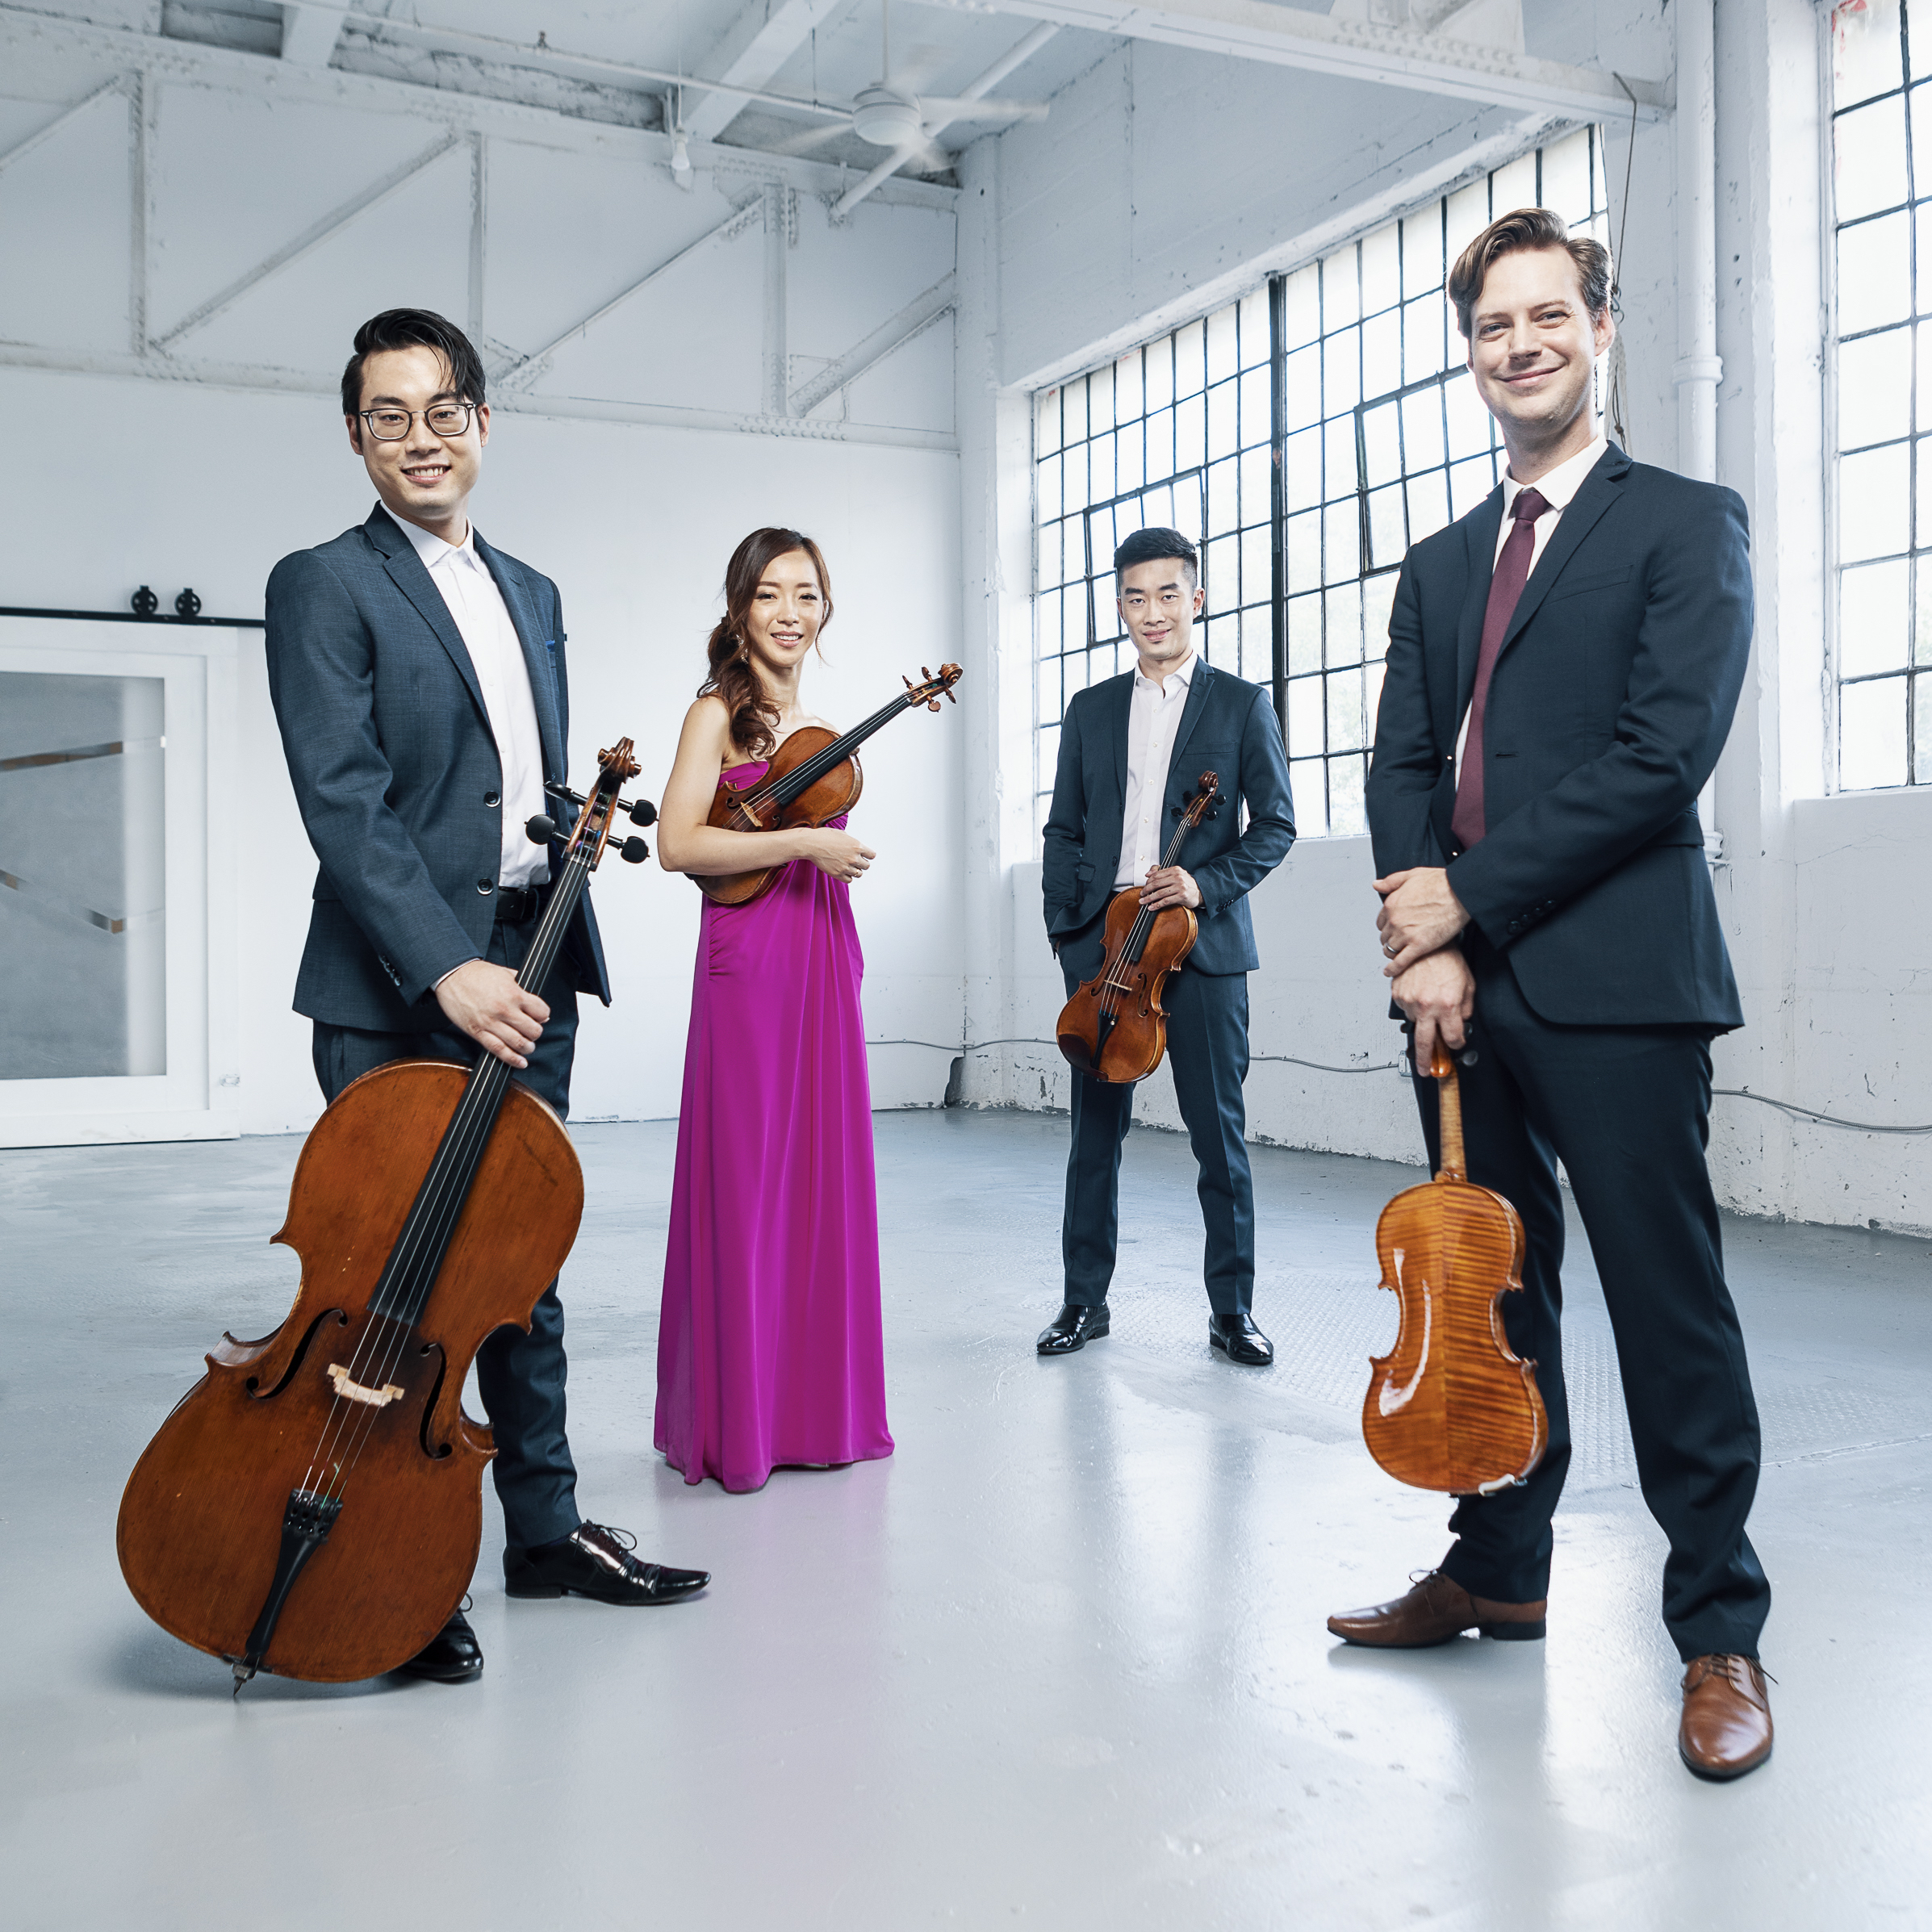 HIGH-STRUNG: As it celebrates 20 years, local chamber music organization gains momentum